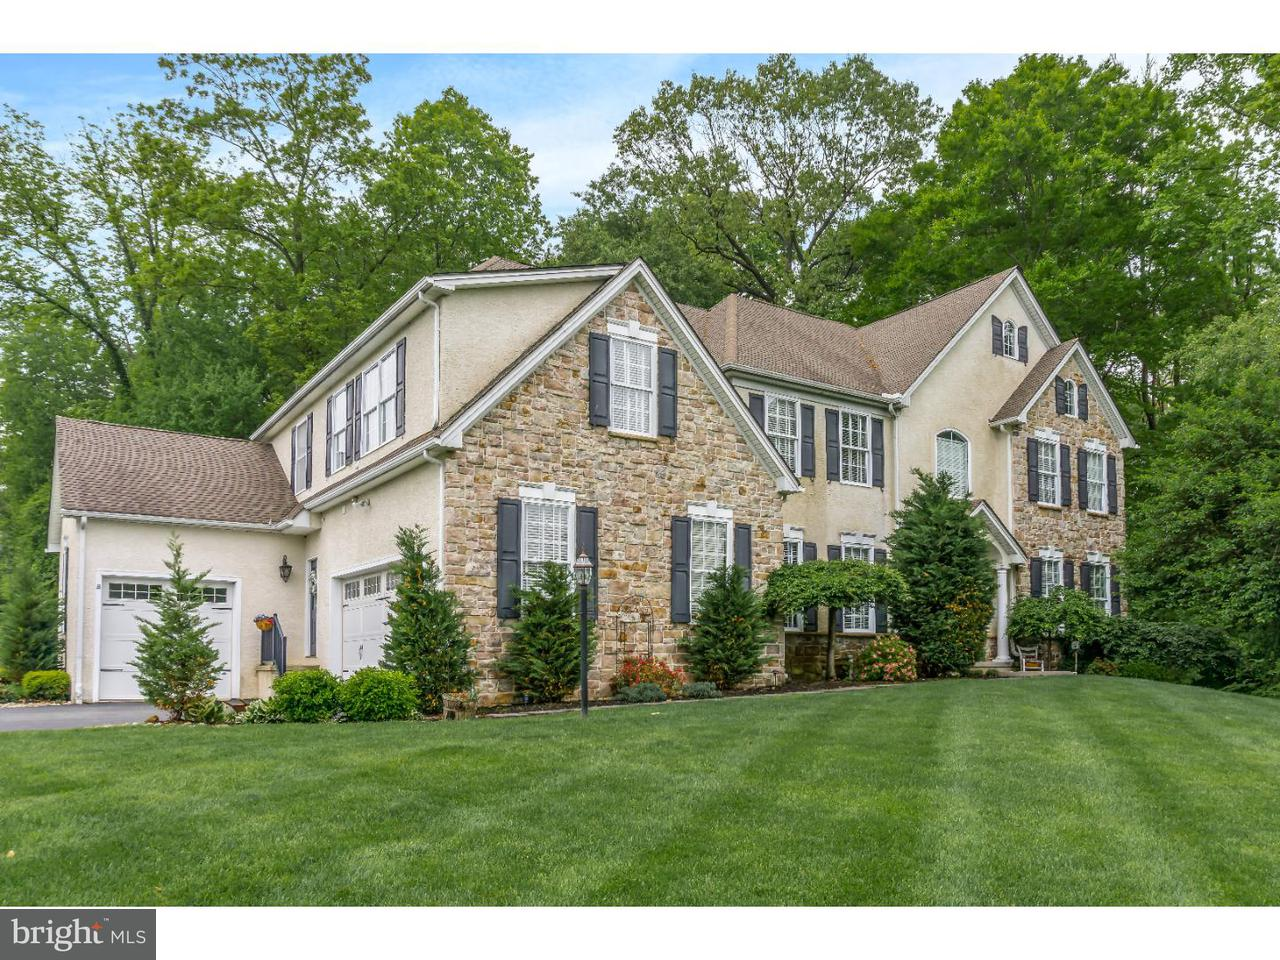 Single Family Home for Sale at 1117 DARCZUK Drive Garnet Valley, Pennsylvania 19061 United States